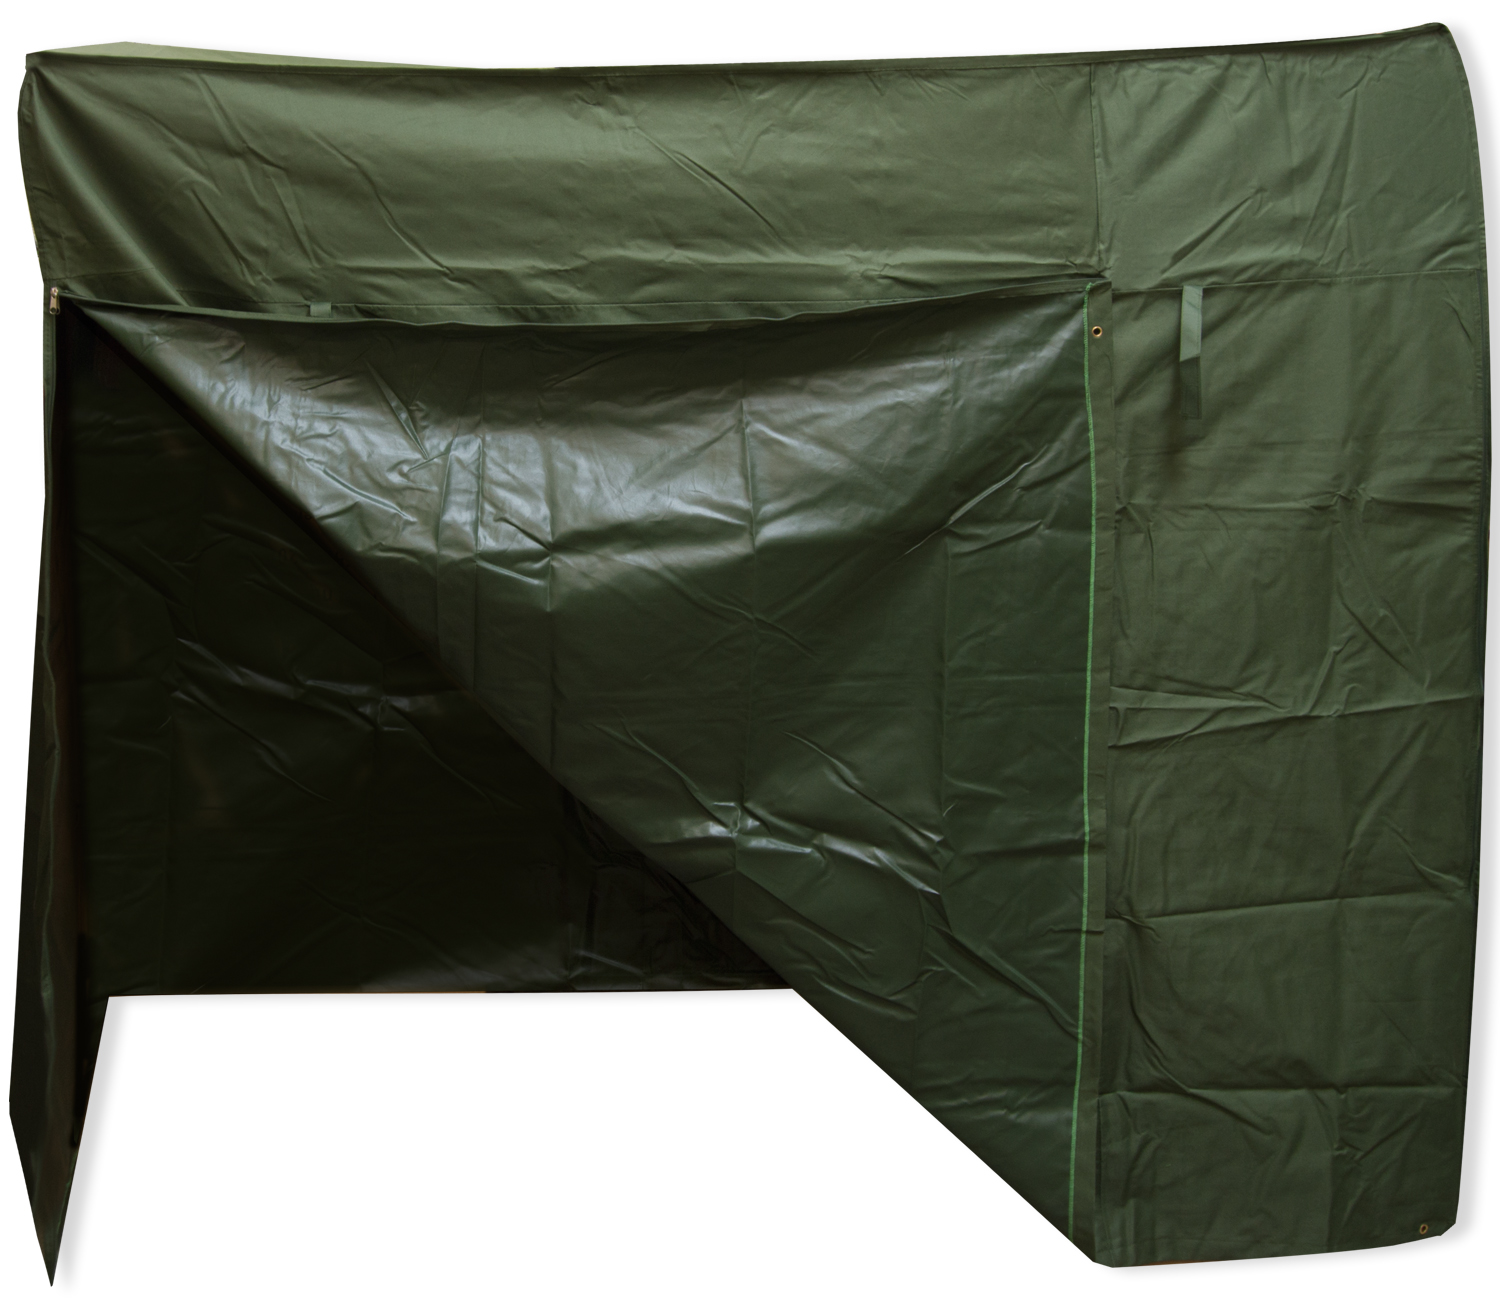 Oxbridge 2 seater hammock swing cover green covers for Oxbridge outdoor furniture covers